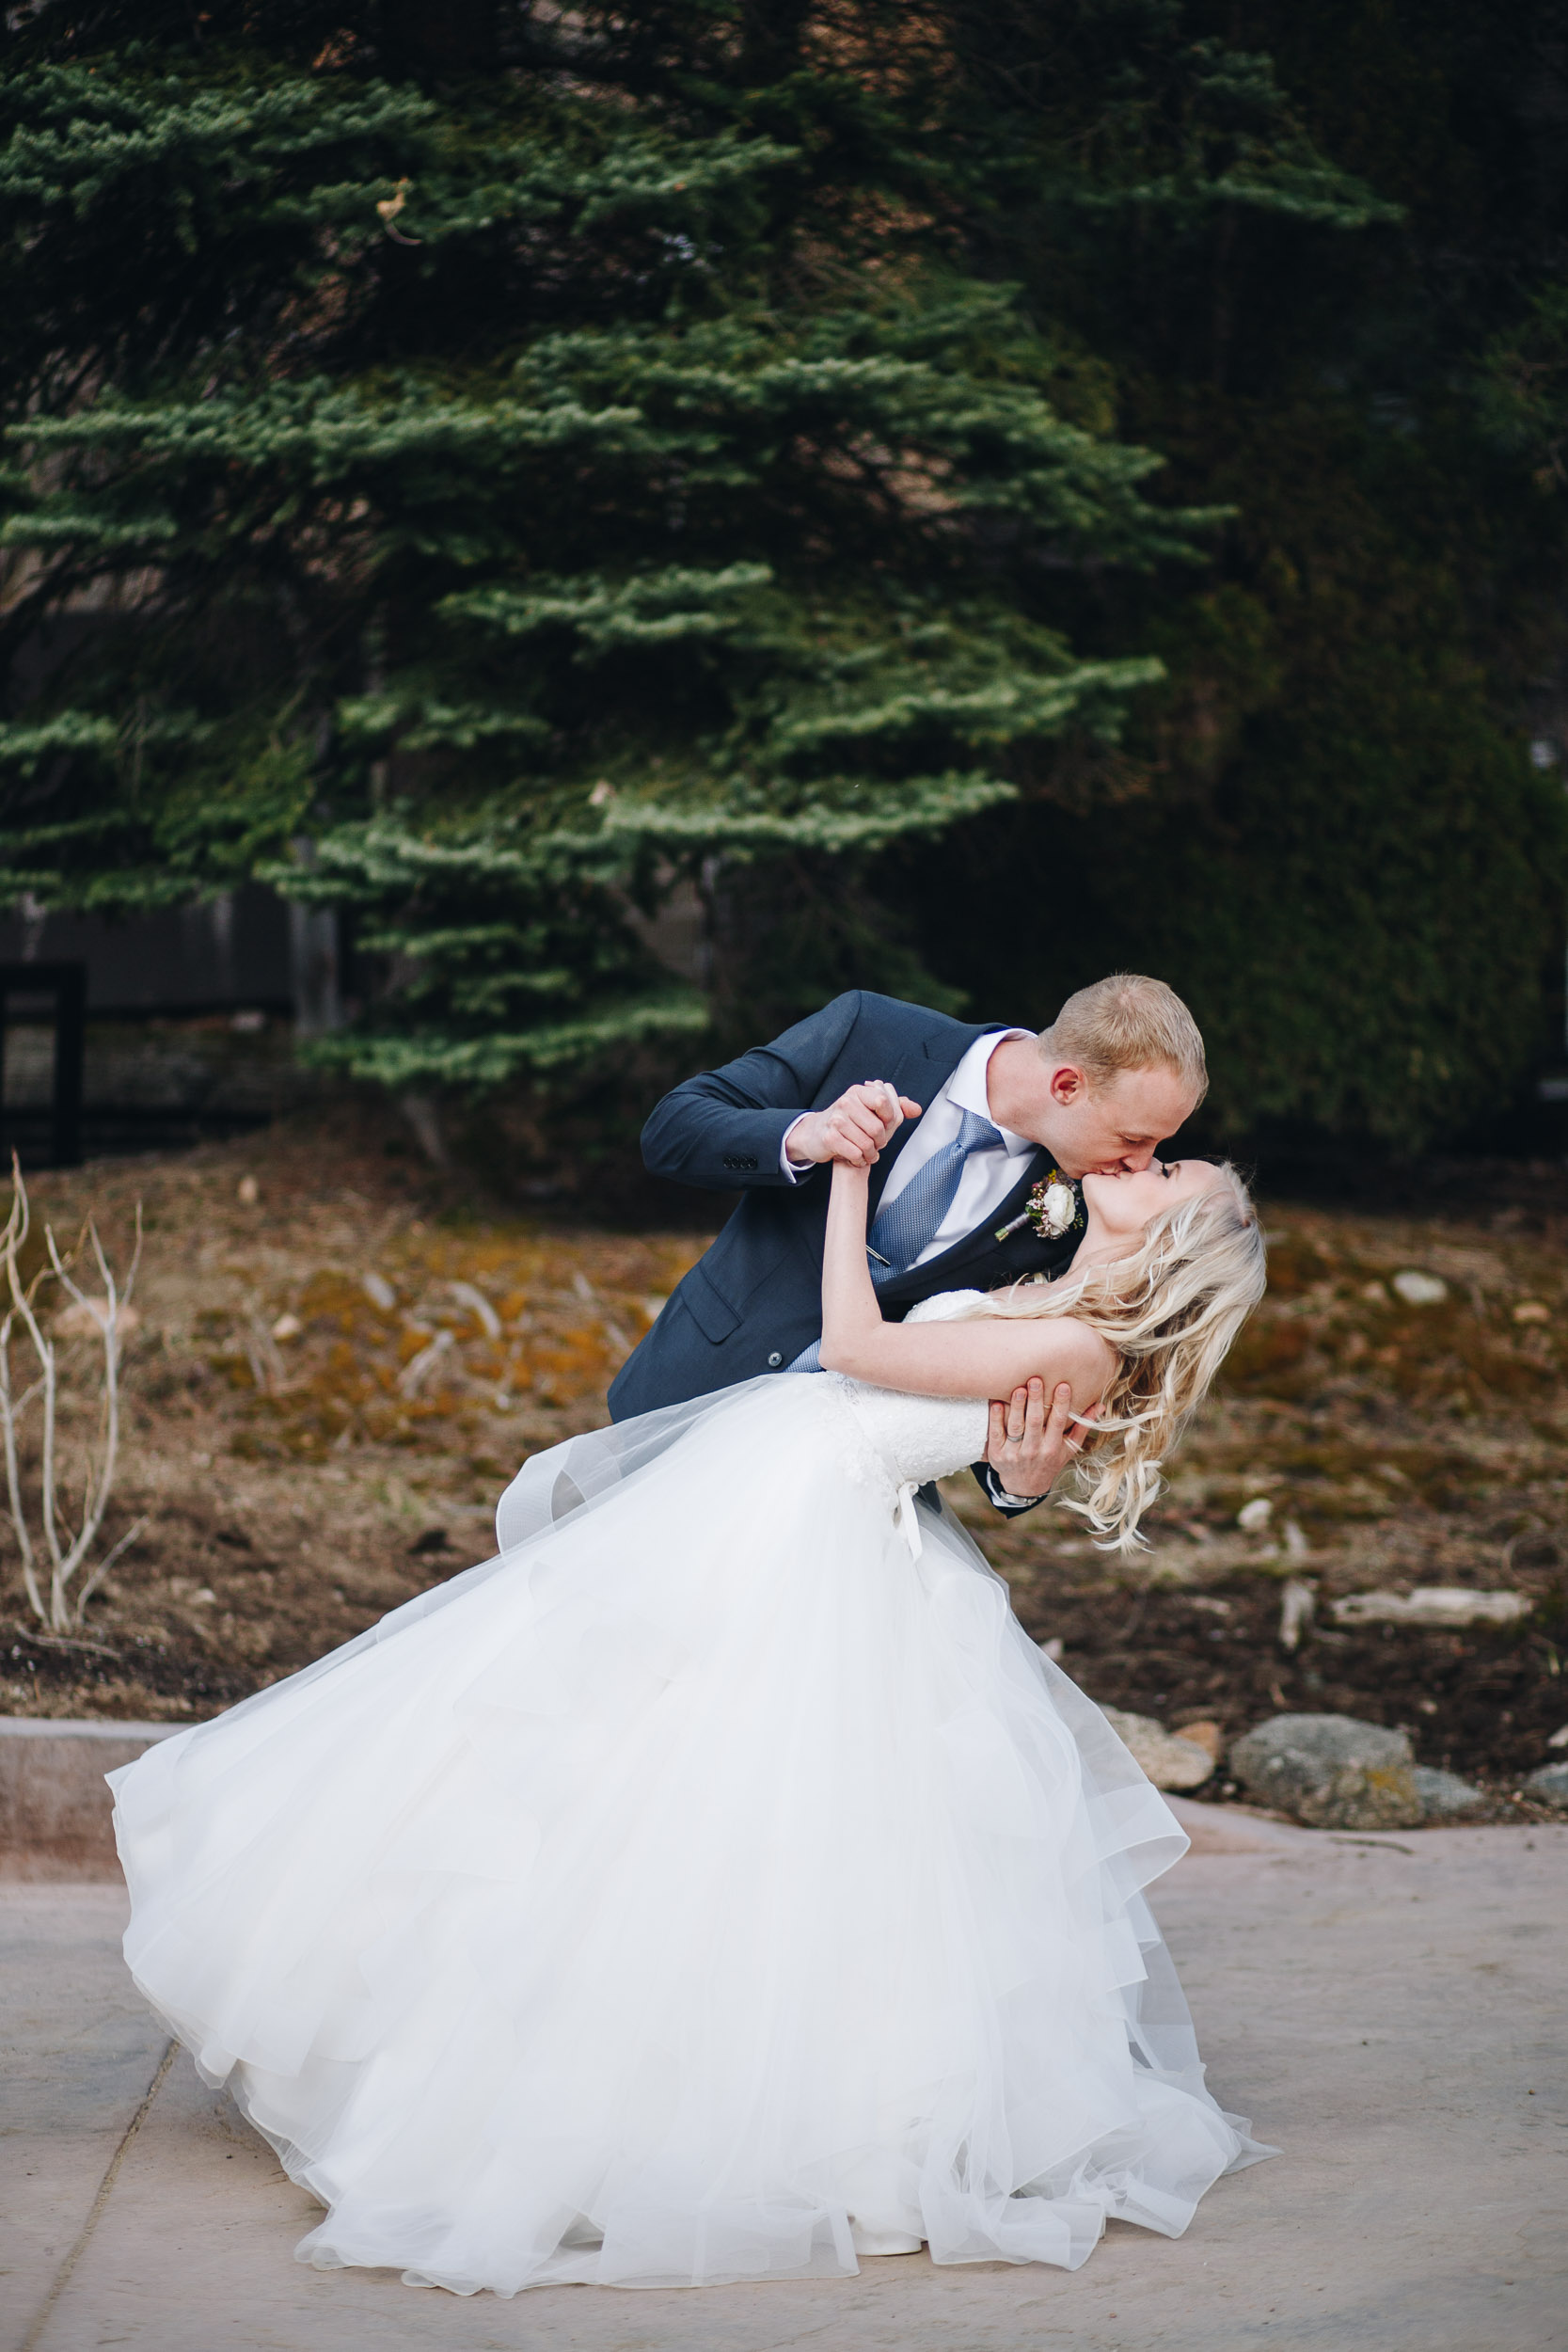 Sarah and Jack get married at Wedgewood Weddings Boulder Creek in Colorado-50.jpg